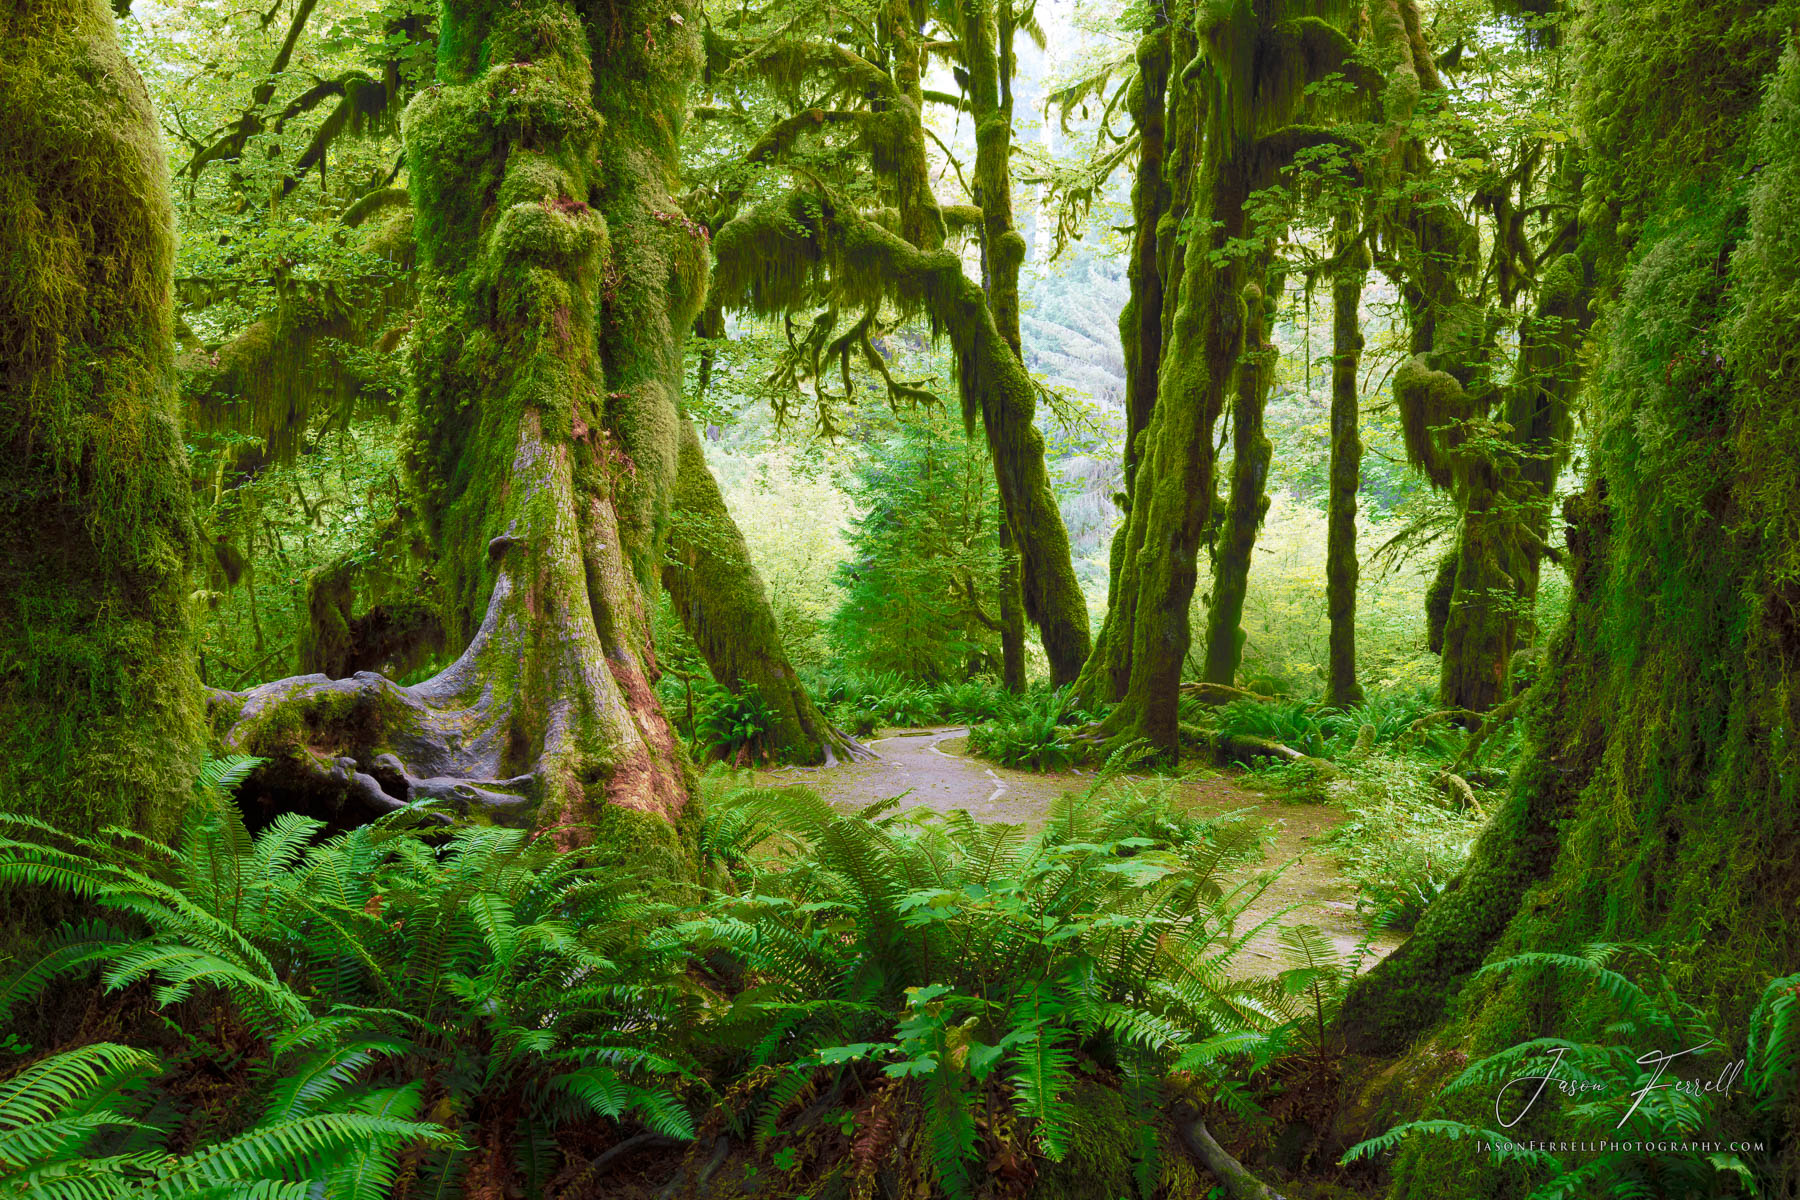 forest, elders, olympic national park, moss, old growth, trail, trees, conifers, hoh rainforest, ferns, photo